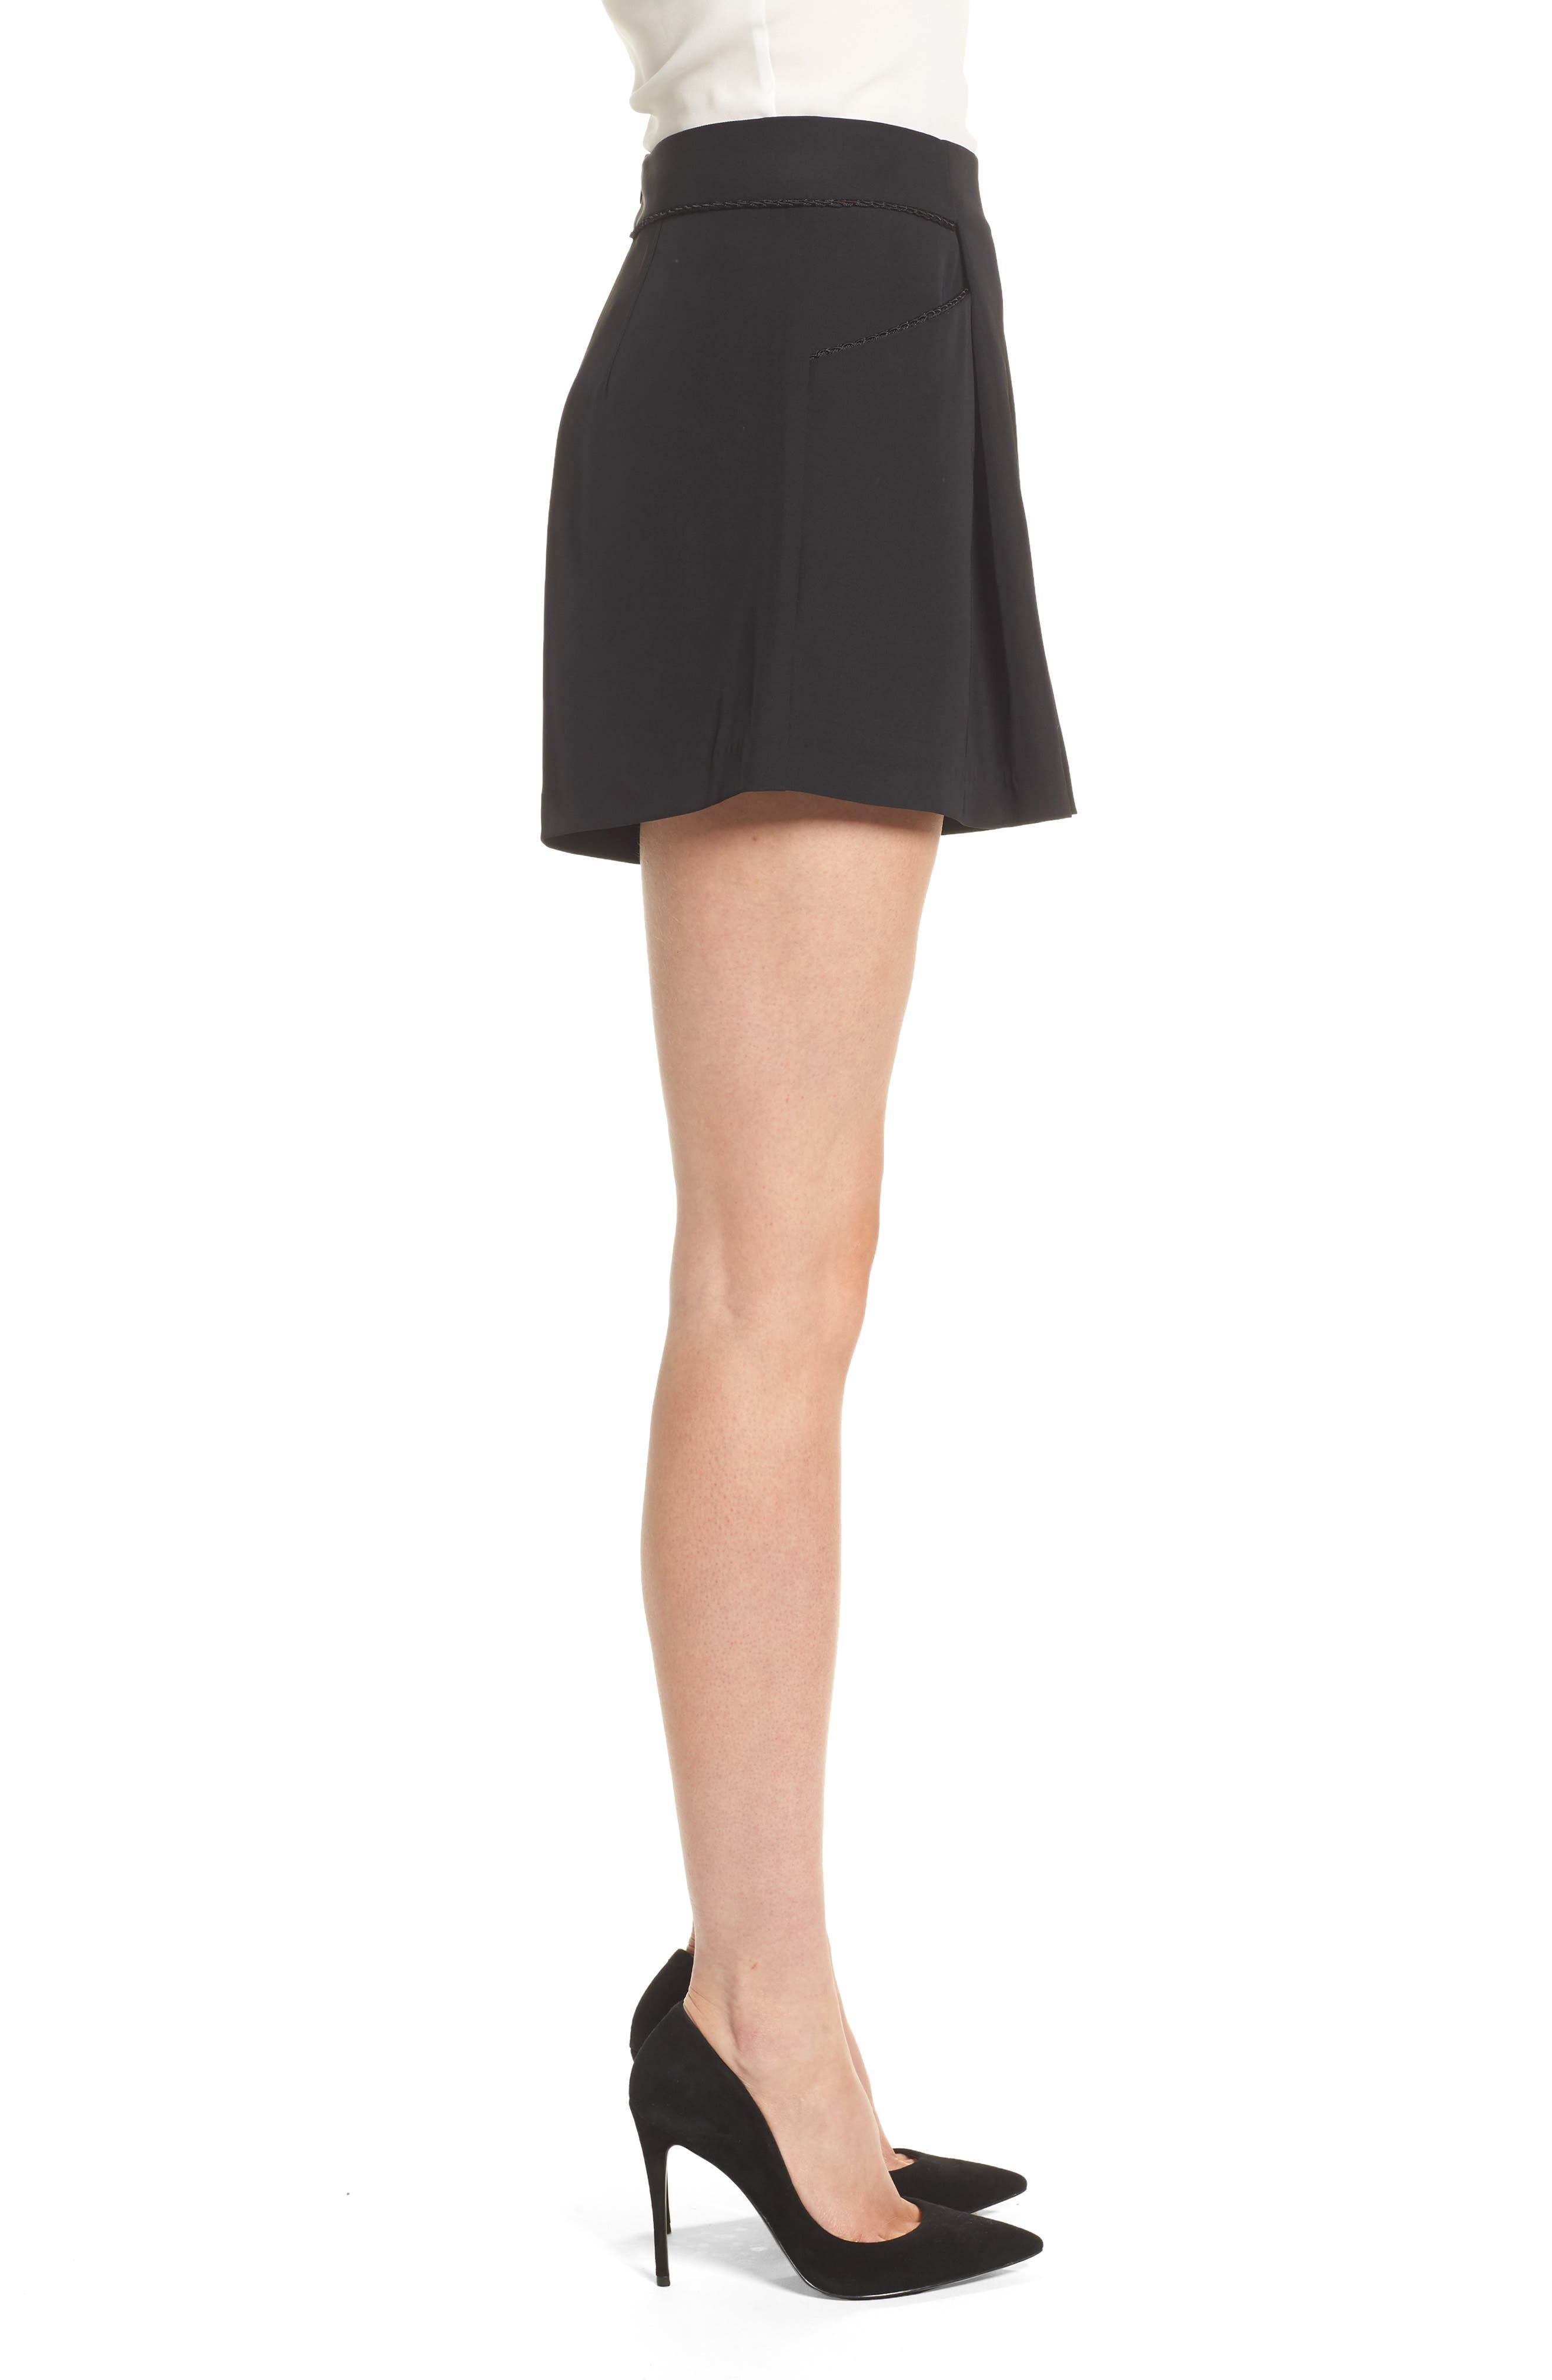 Ceremony High Waist Shorts,                             Alternate thumbnail 3, color,                             Black